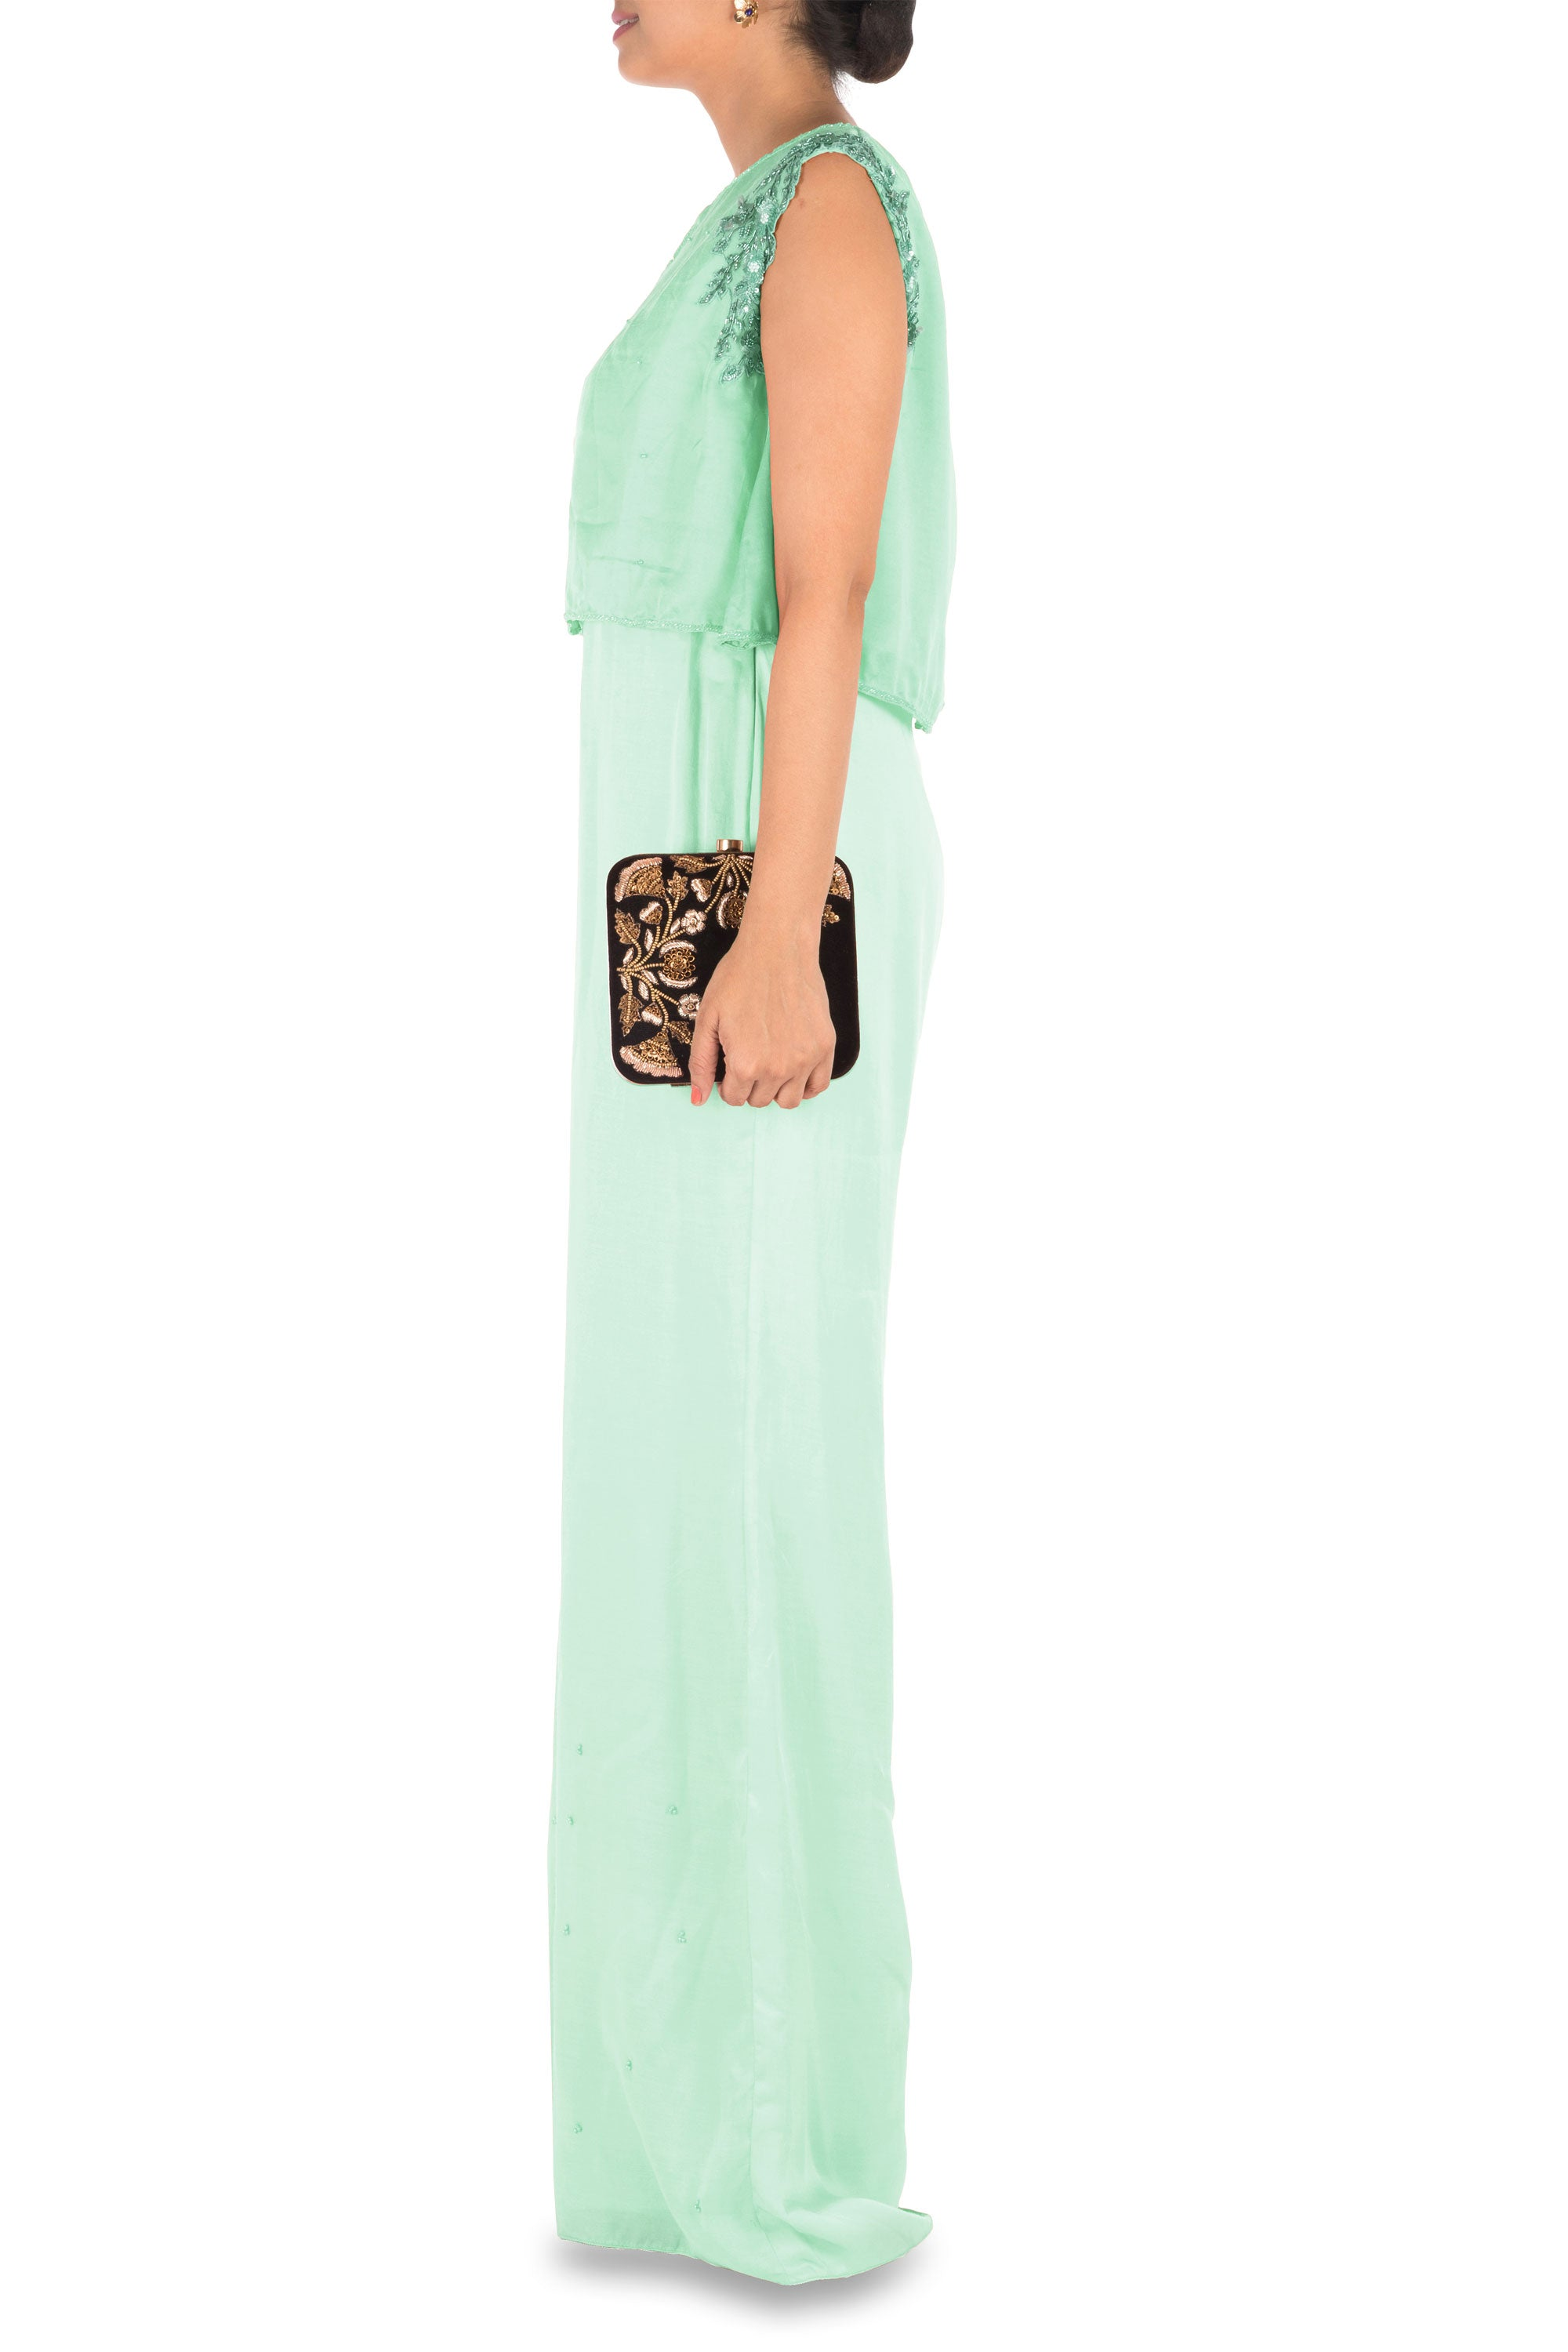 Sea Green Jumpsuit With Attach Jacket Side